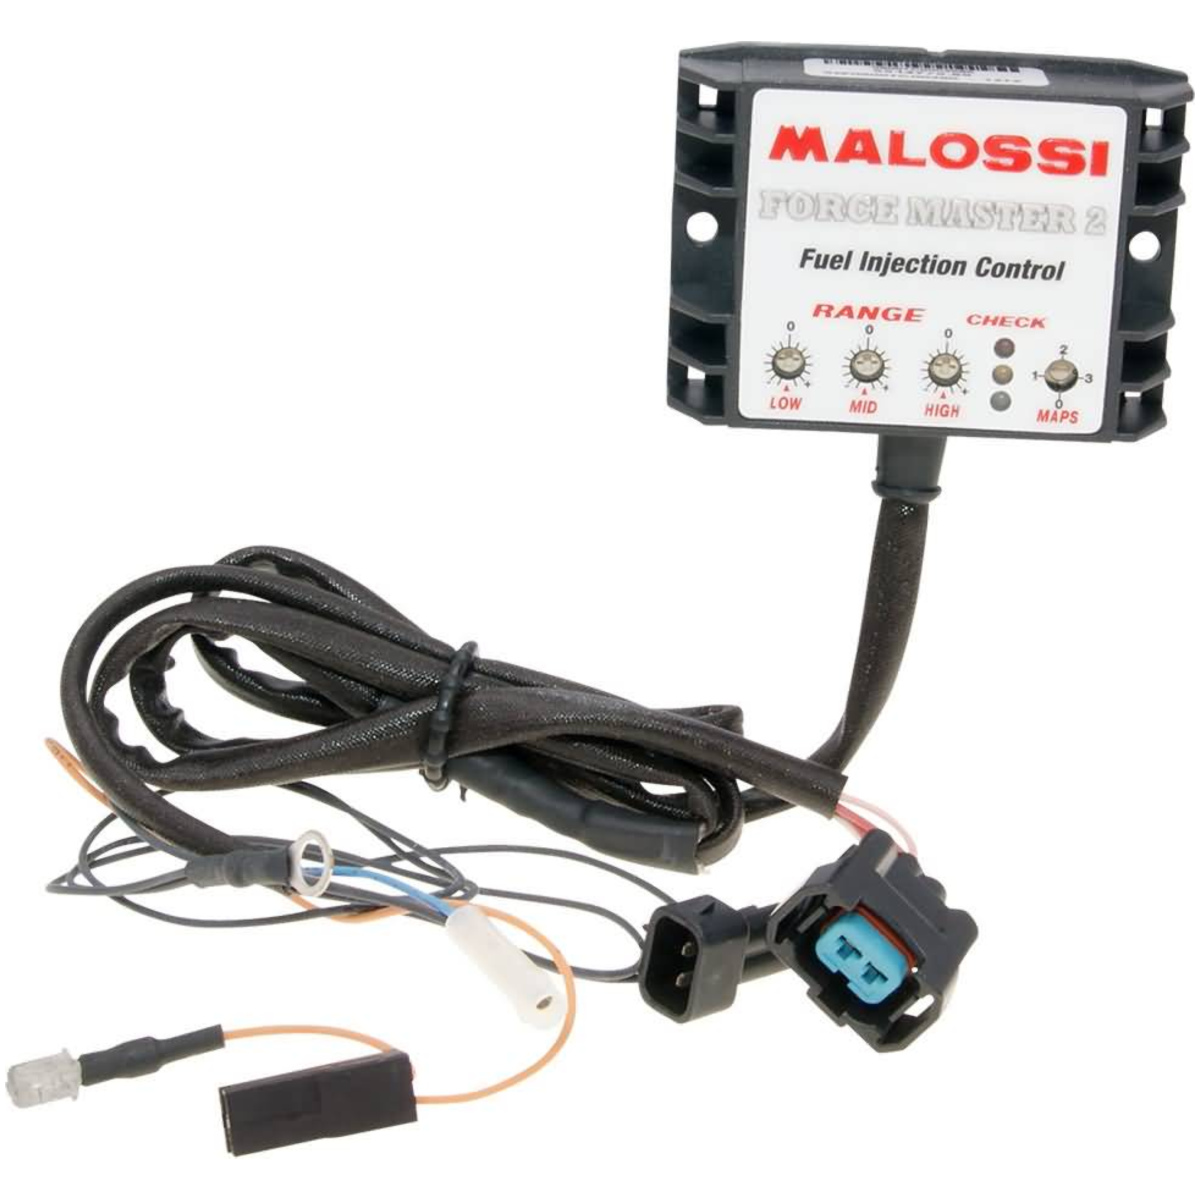 Cdi Injection Module Malossi Force Master 2 For Honda Sh I 125 Ie Metal Detector 4 Stroke Lc M5514778